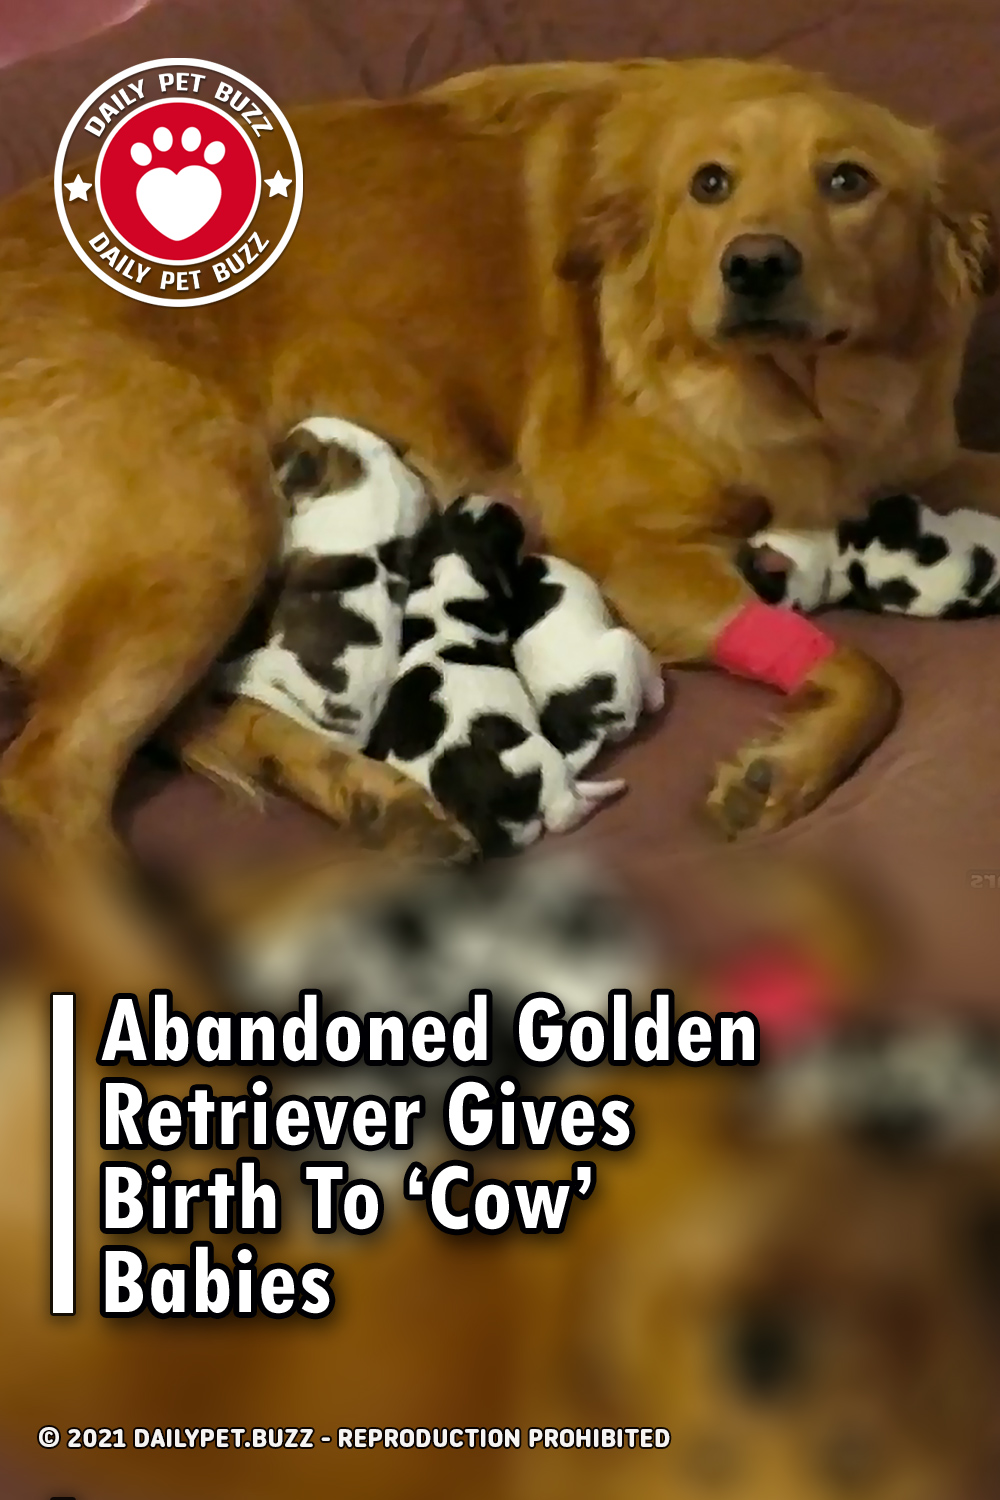 Abandoned Golden Retriever Gives Birth To 'Cow' Babies